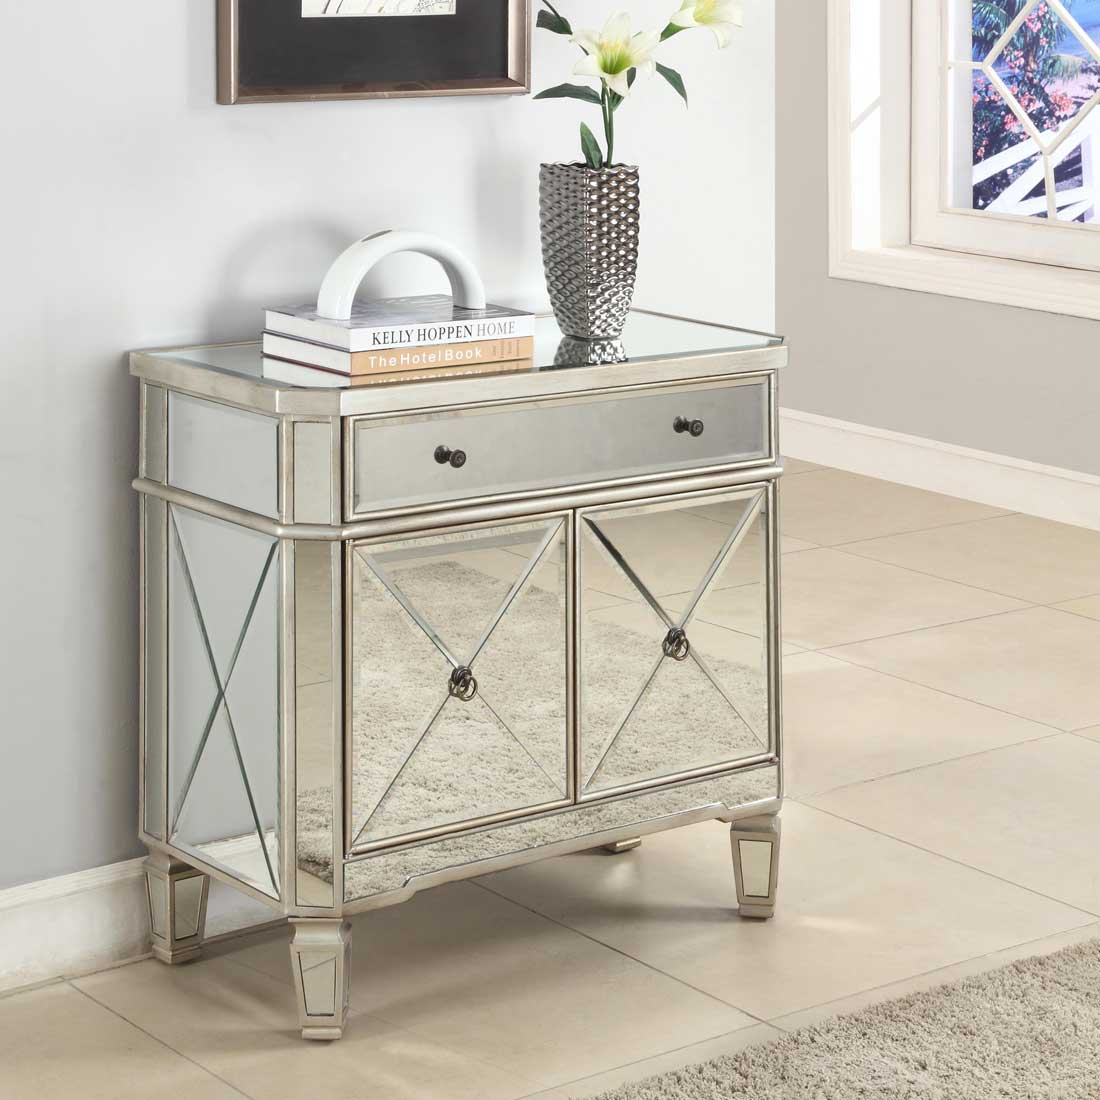 mirrored accent table with drawer cairocitizen collection how end mirror decorate small rustic tables lift coffee blow mattress target living room sets clear acrylic furniture